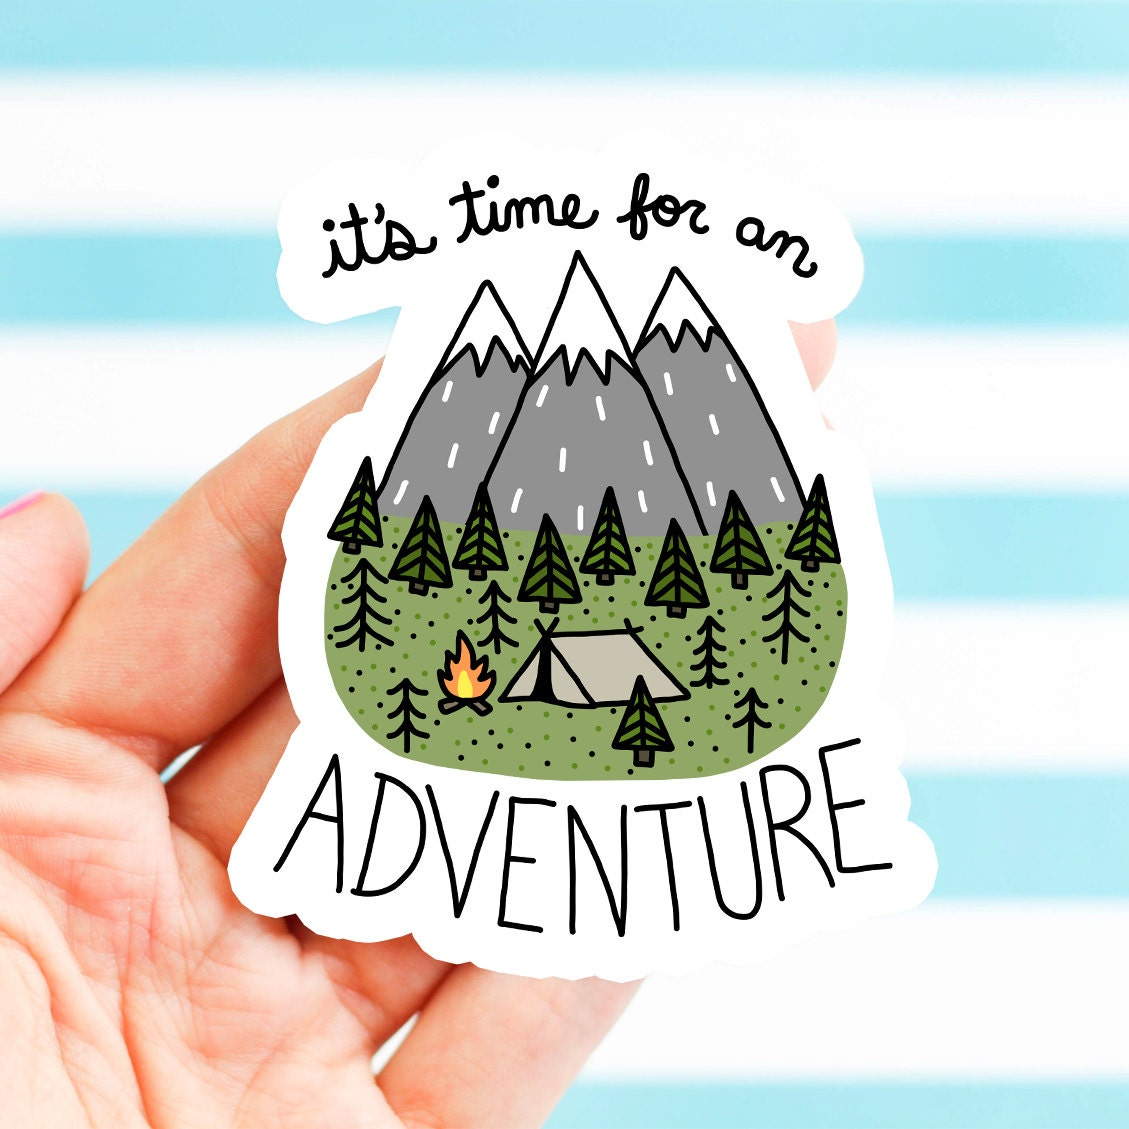 Bumper sticker api design - Adventure Sticker Bike Stickers Nature Bumper Stickers Camping Sticker Explore Travel Sticker Hiking Sticker Motivational Sticker Car